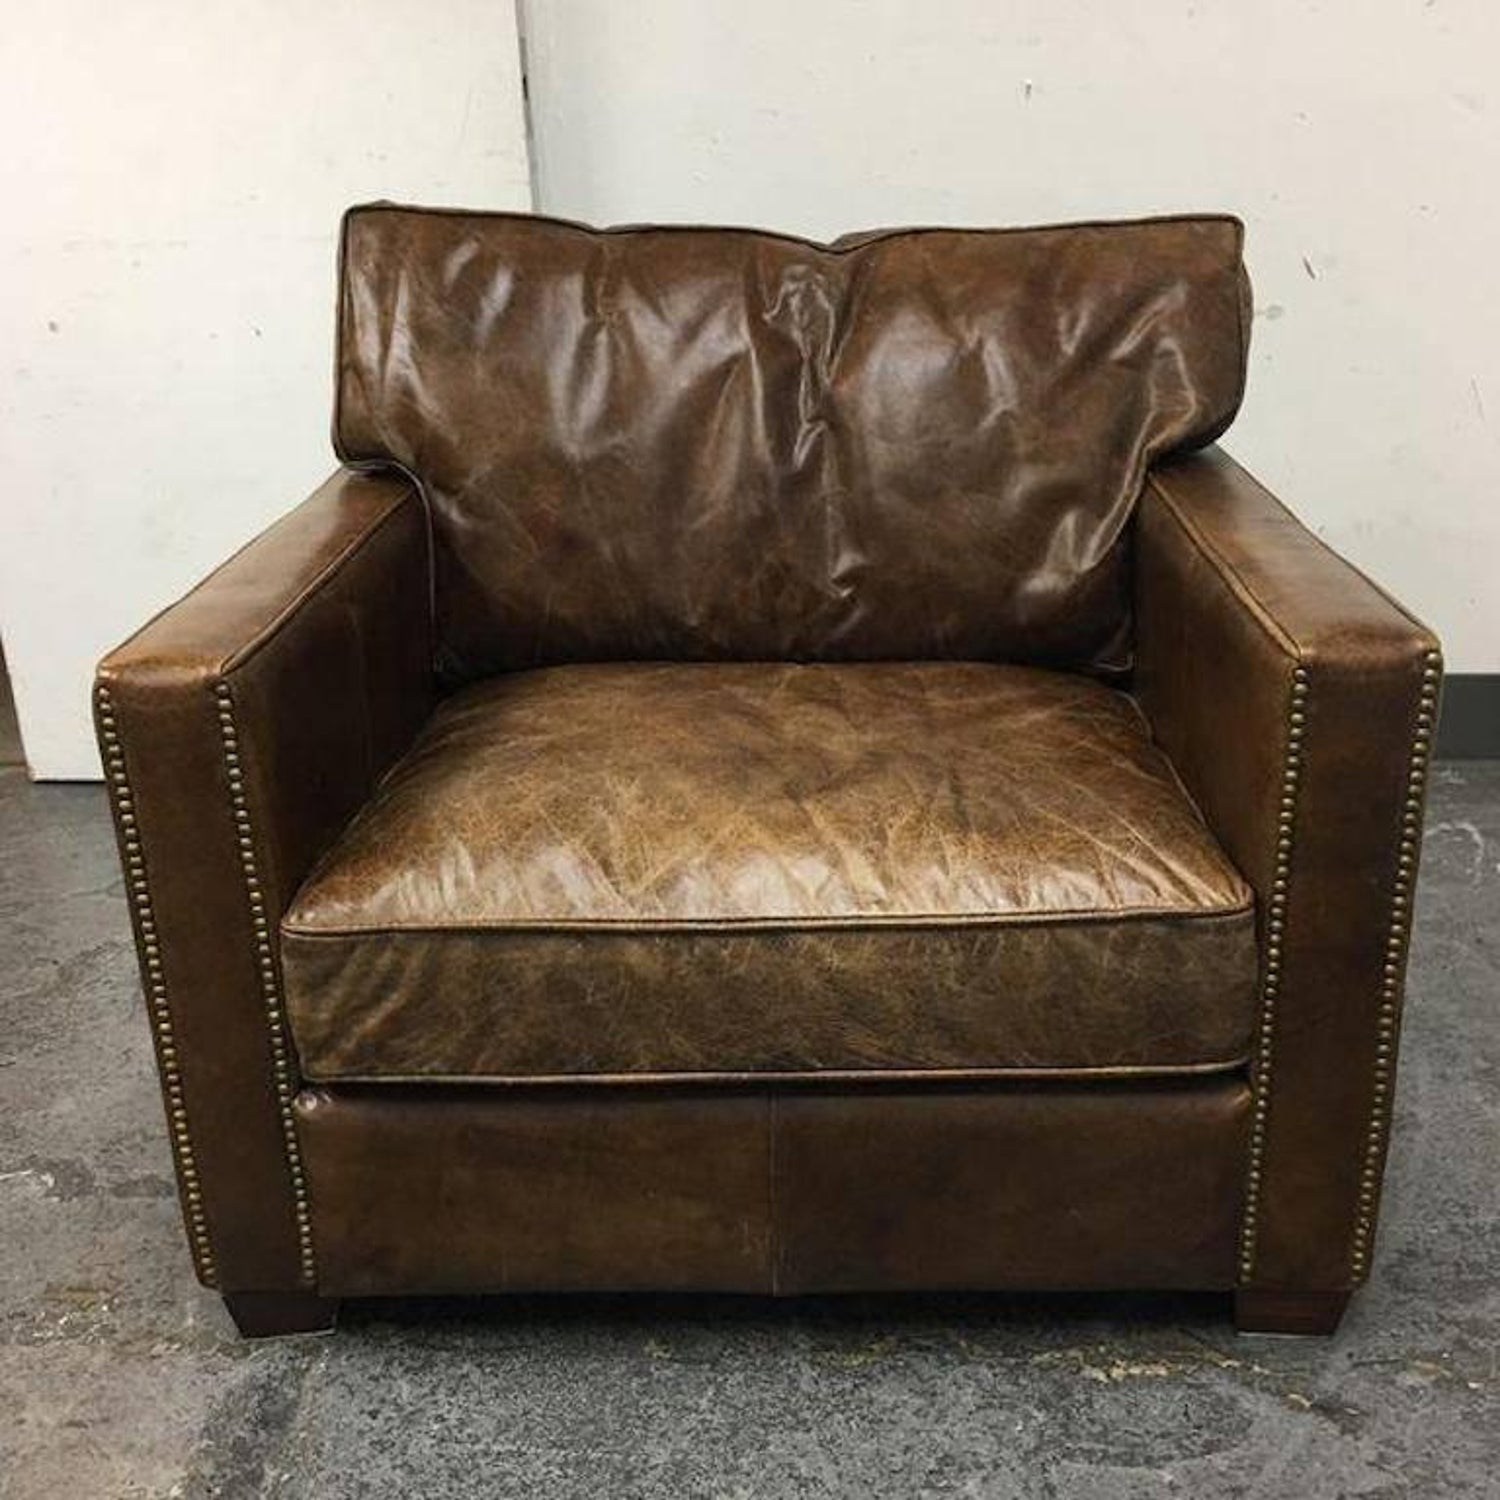 Pleasing Four Hands Hemingway Chair In Cigar Leather At 1Stdibs Unemploymentrelief Wooden Chair Designs For Living Room Unemploymentrelieforg